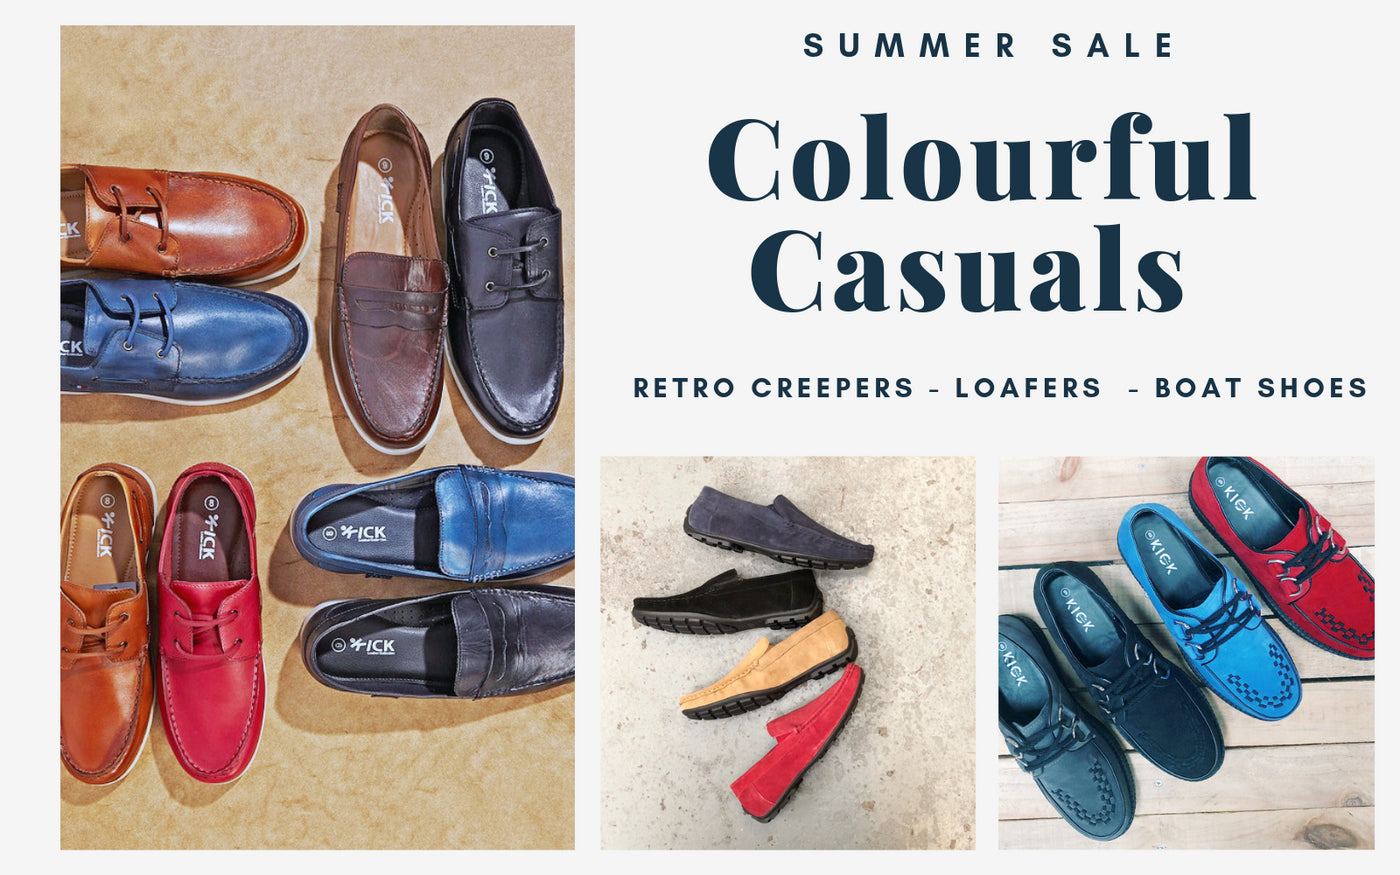 00dbbfdd2994 Men's Leather Suede Casual Summer Shoes Slip on Loafer Boat Shoes Chunky  Retro Teddy Boy Creepers